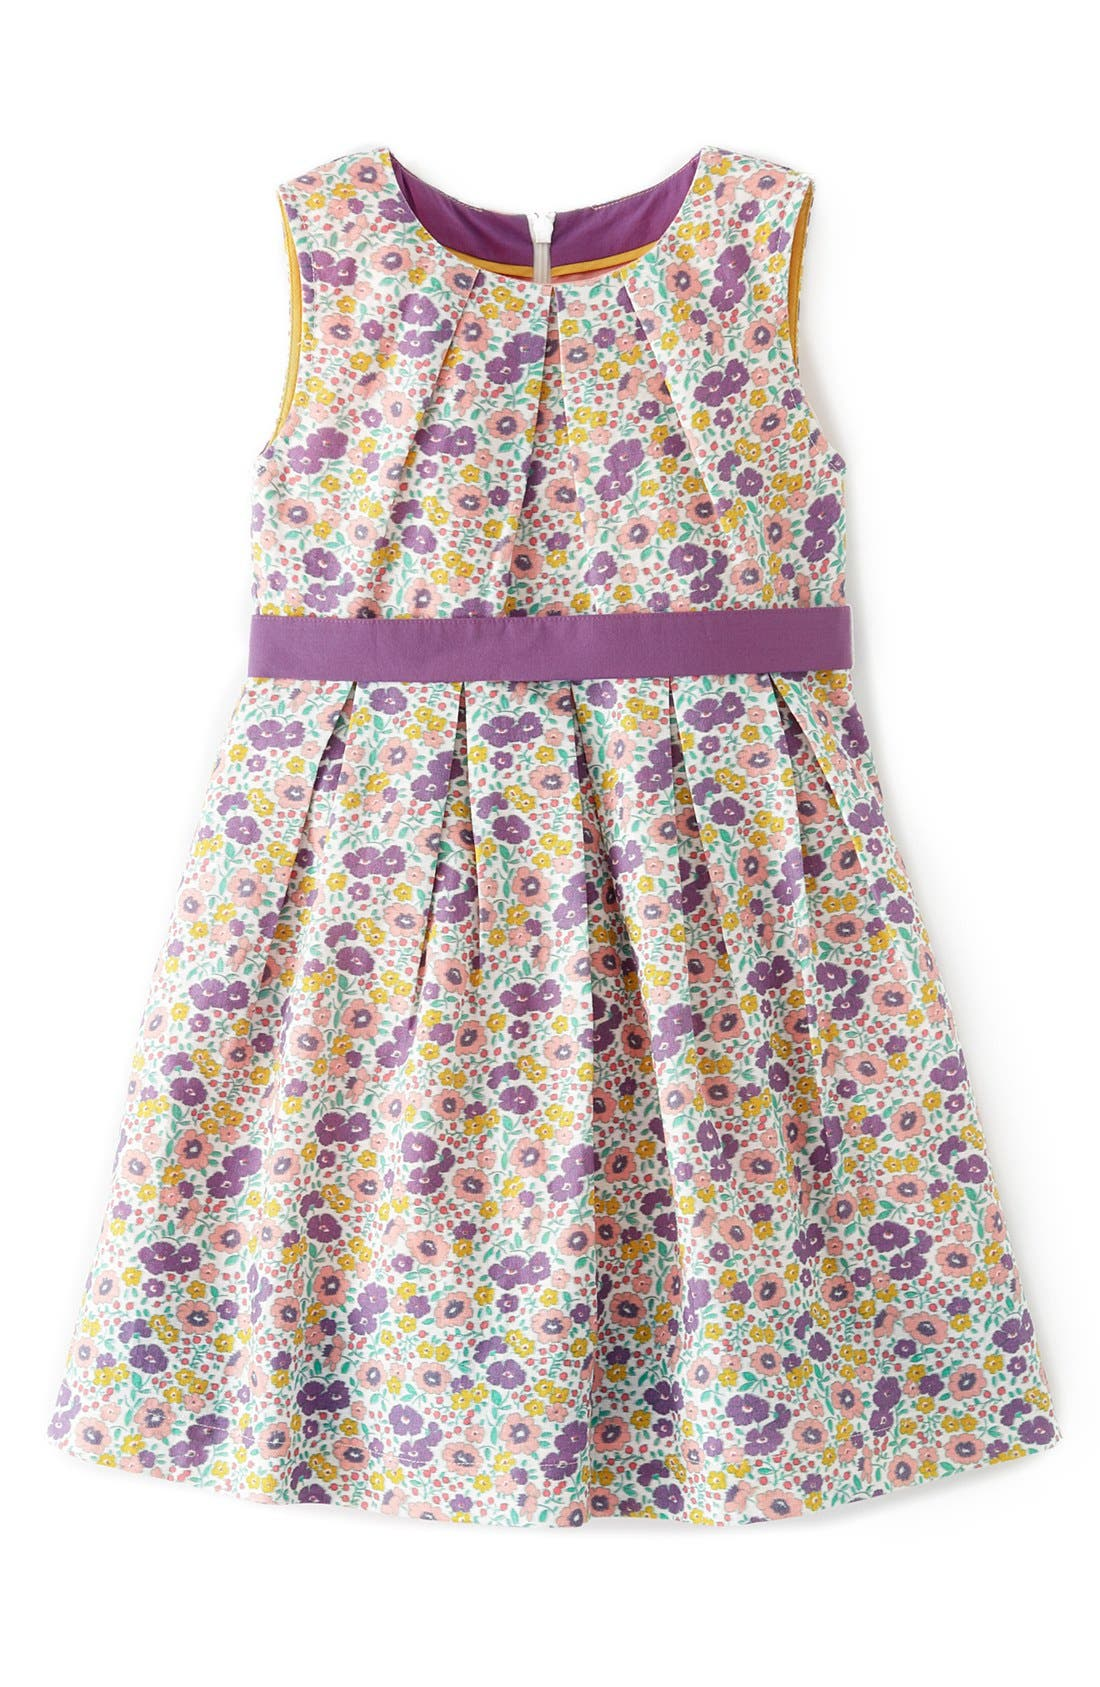 Main Image - Mini Boden 'Vintage' Dress (Little Girls & Big Girls)